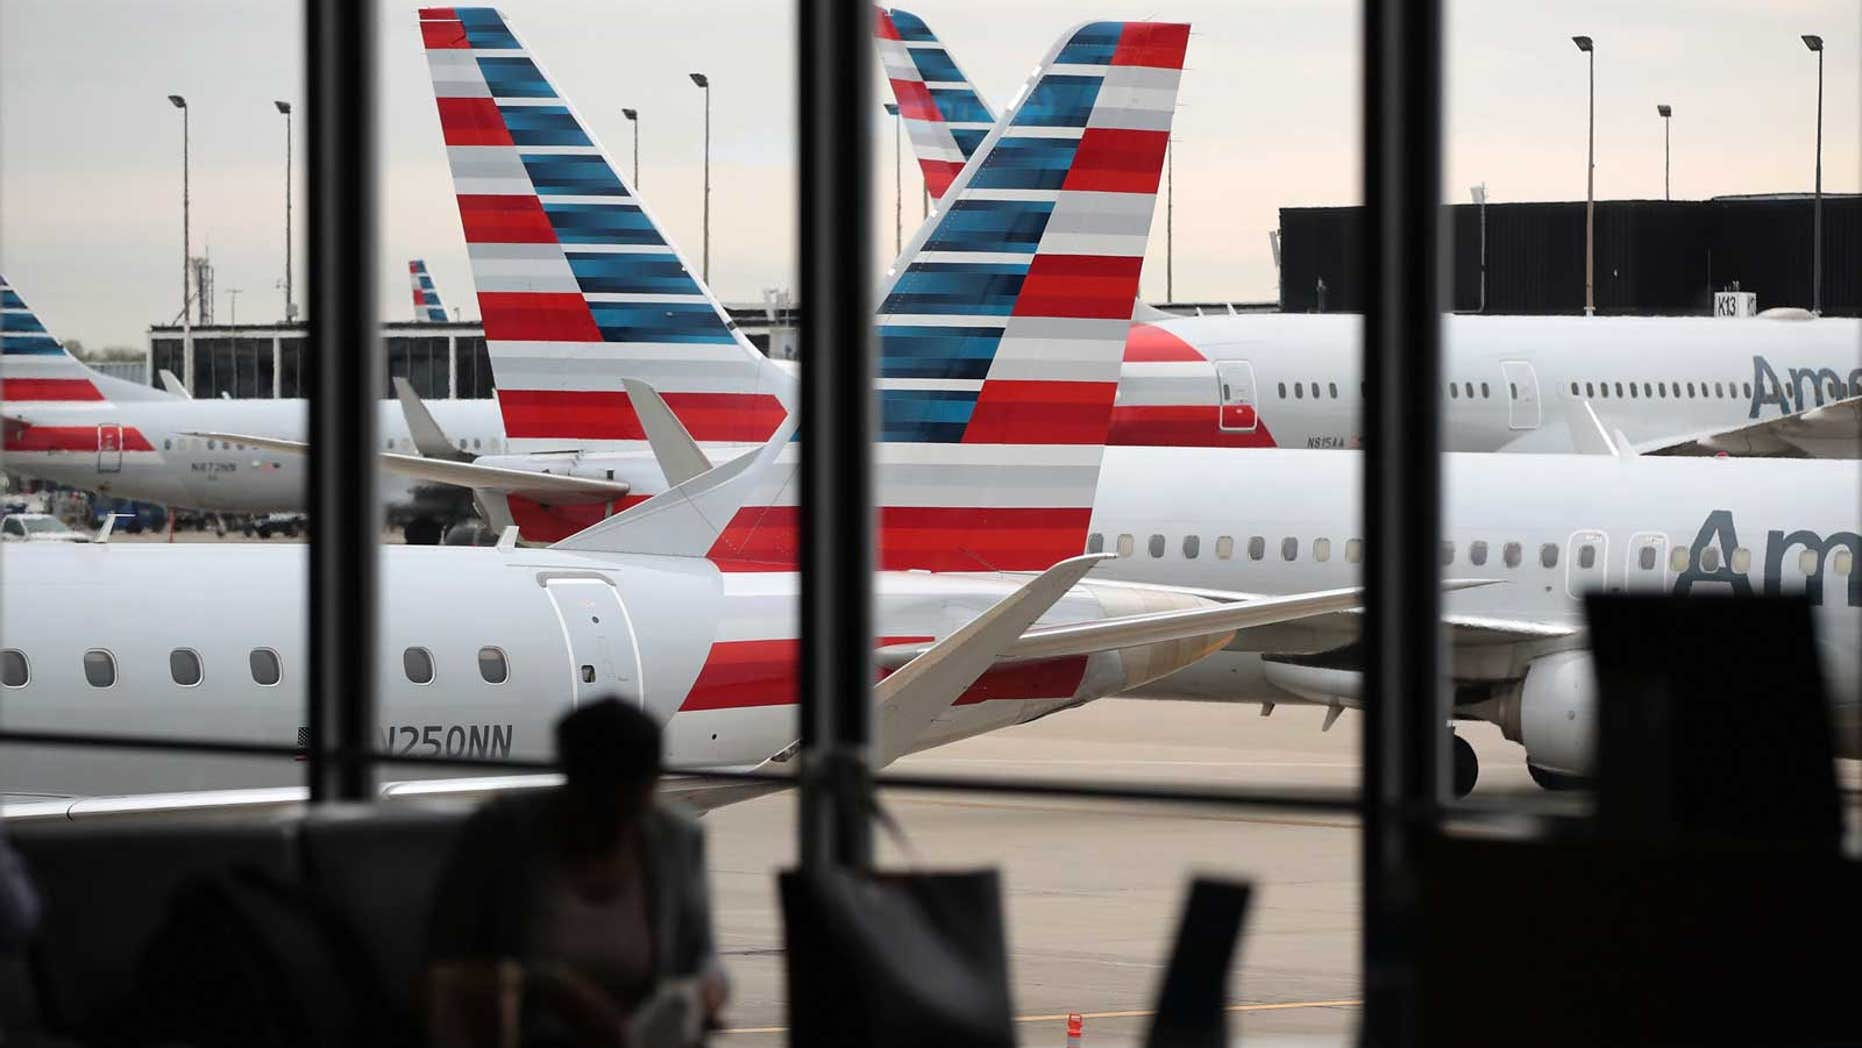 Members from a student group flying to Boston from Miami reportedly fell ill during the flight.